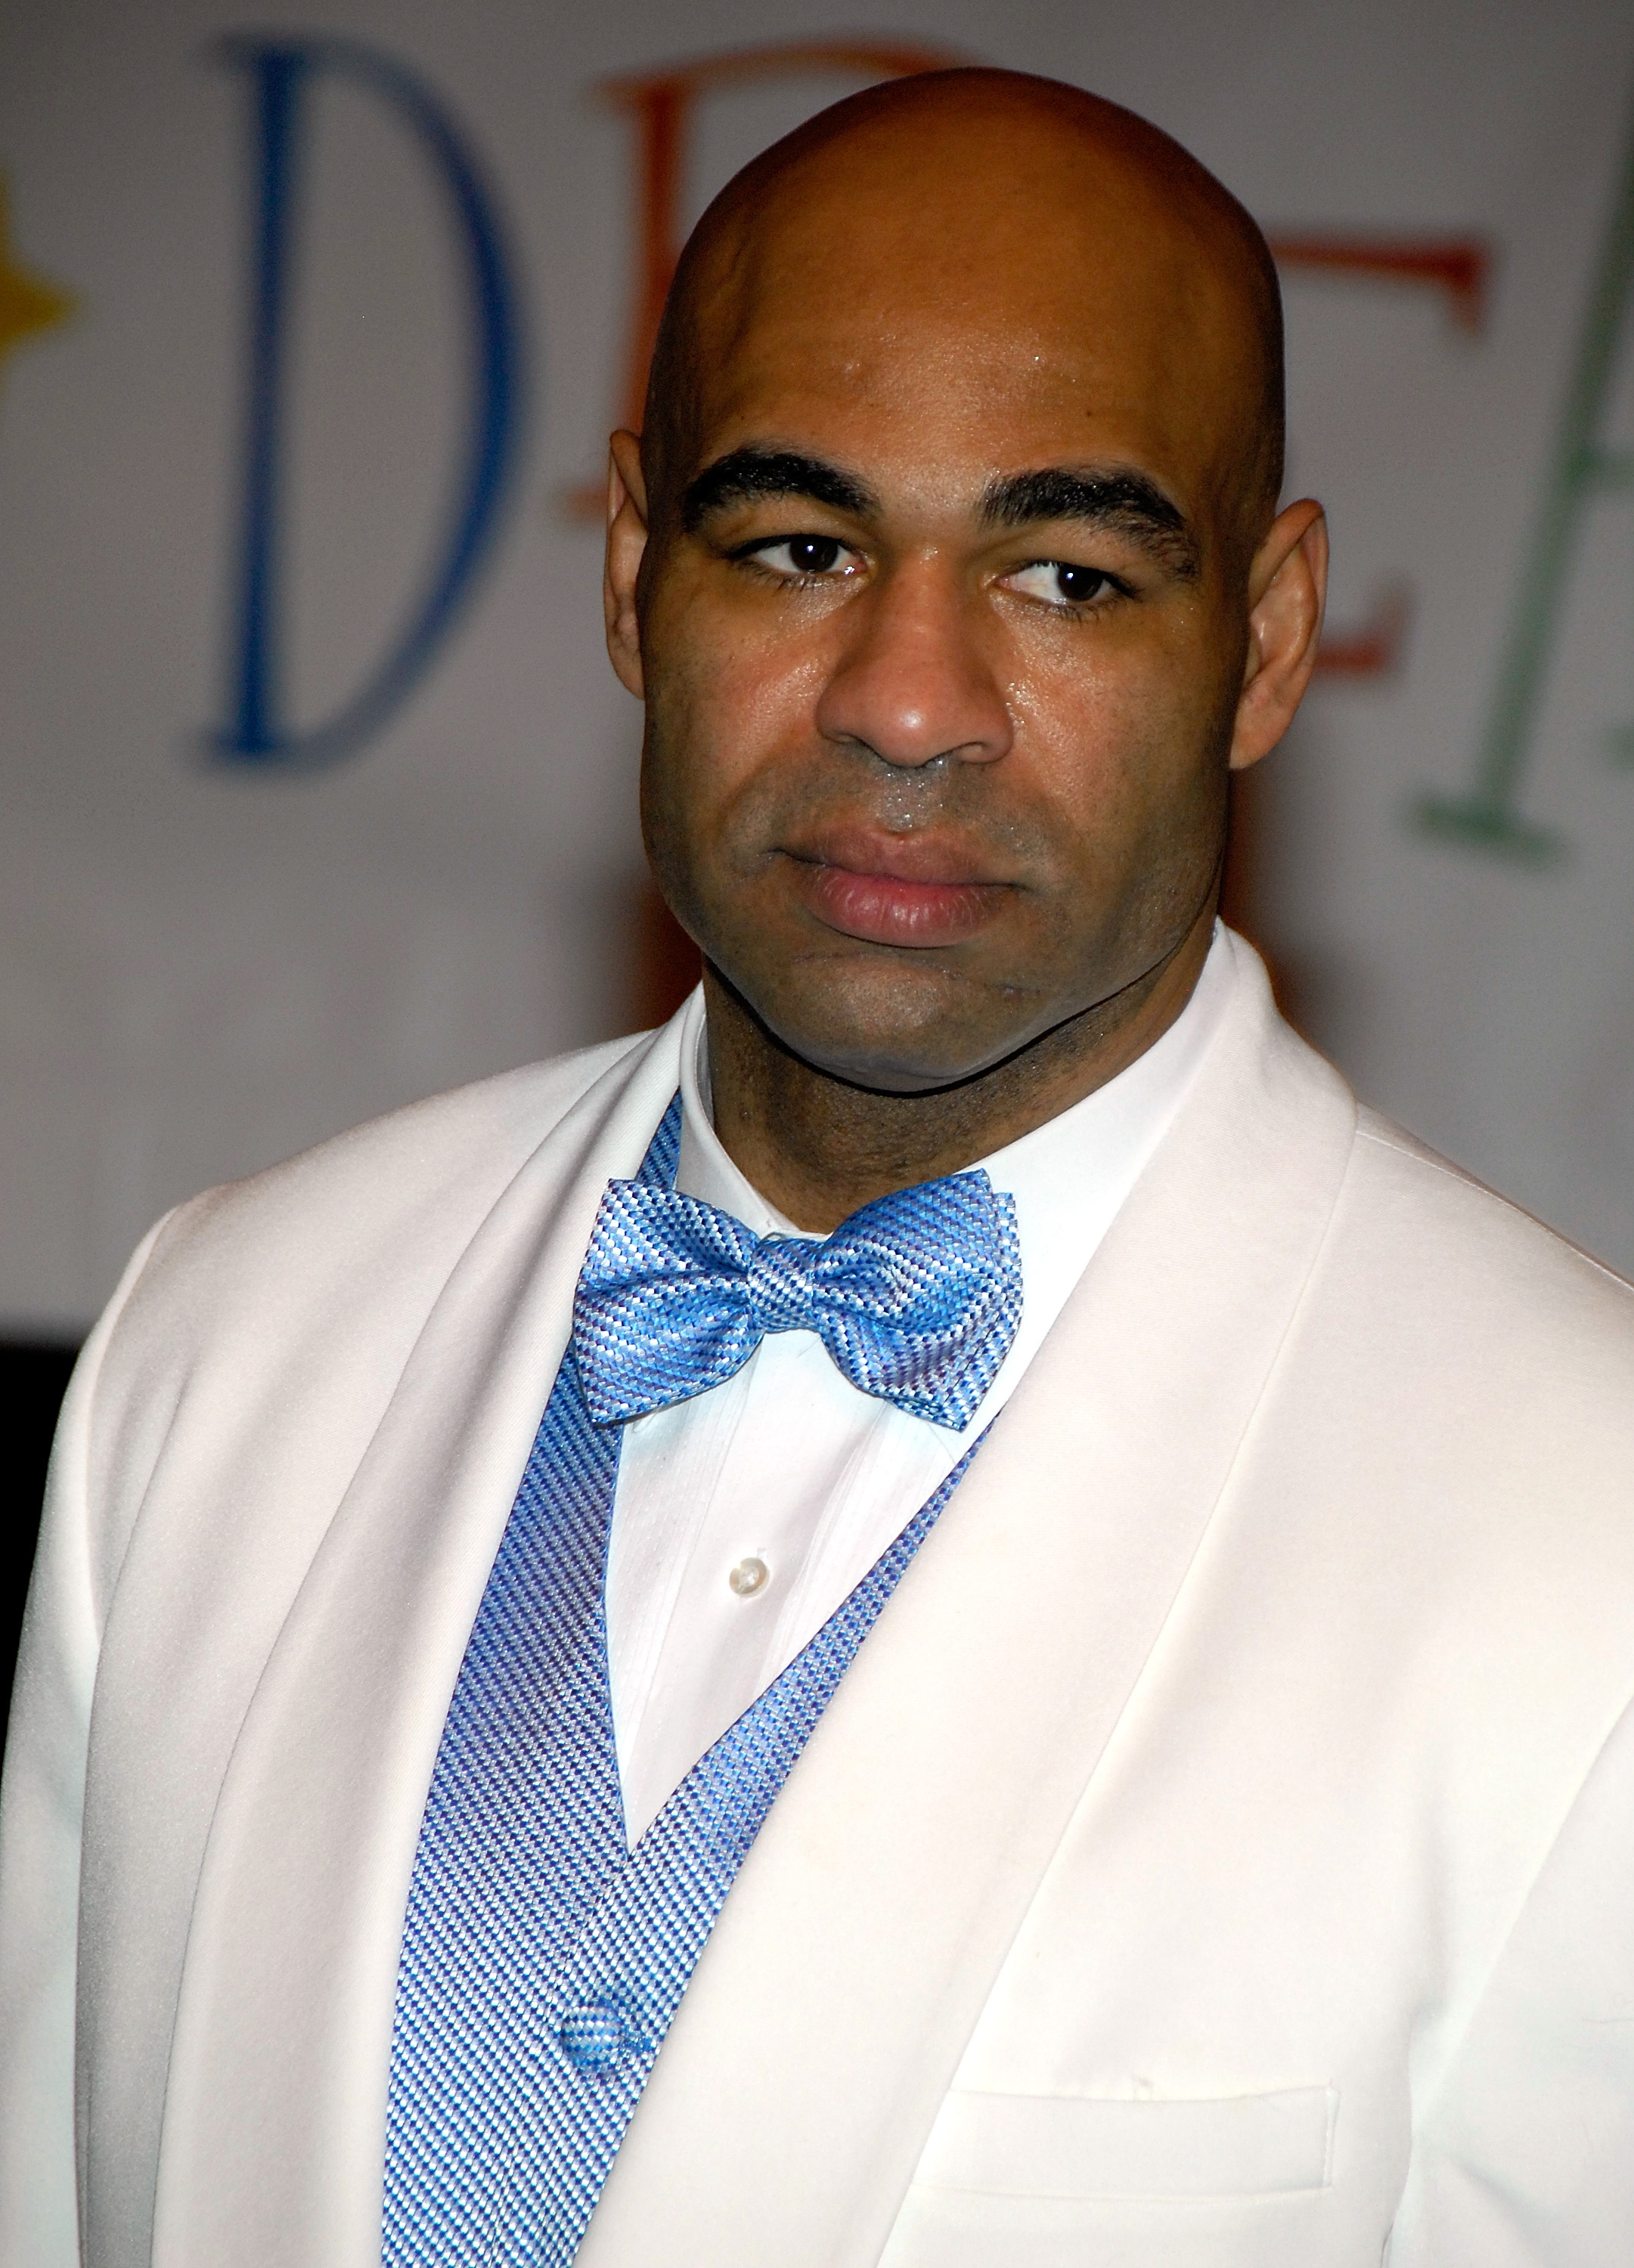 Donald Brashear in a white suit with a blue vest and bowtie.